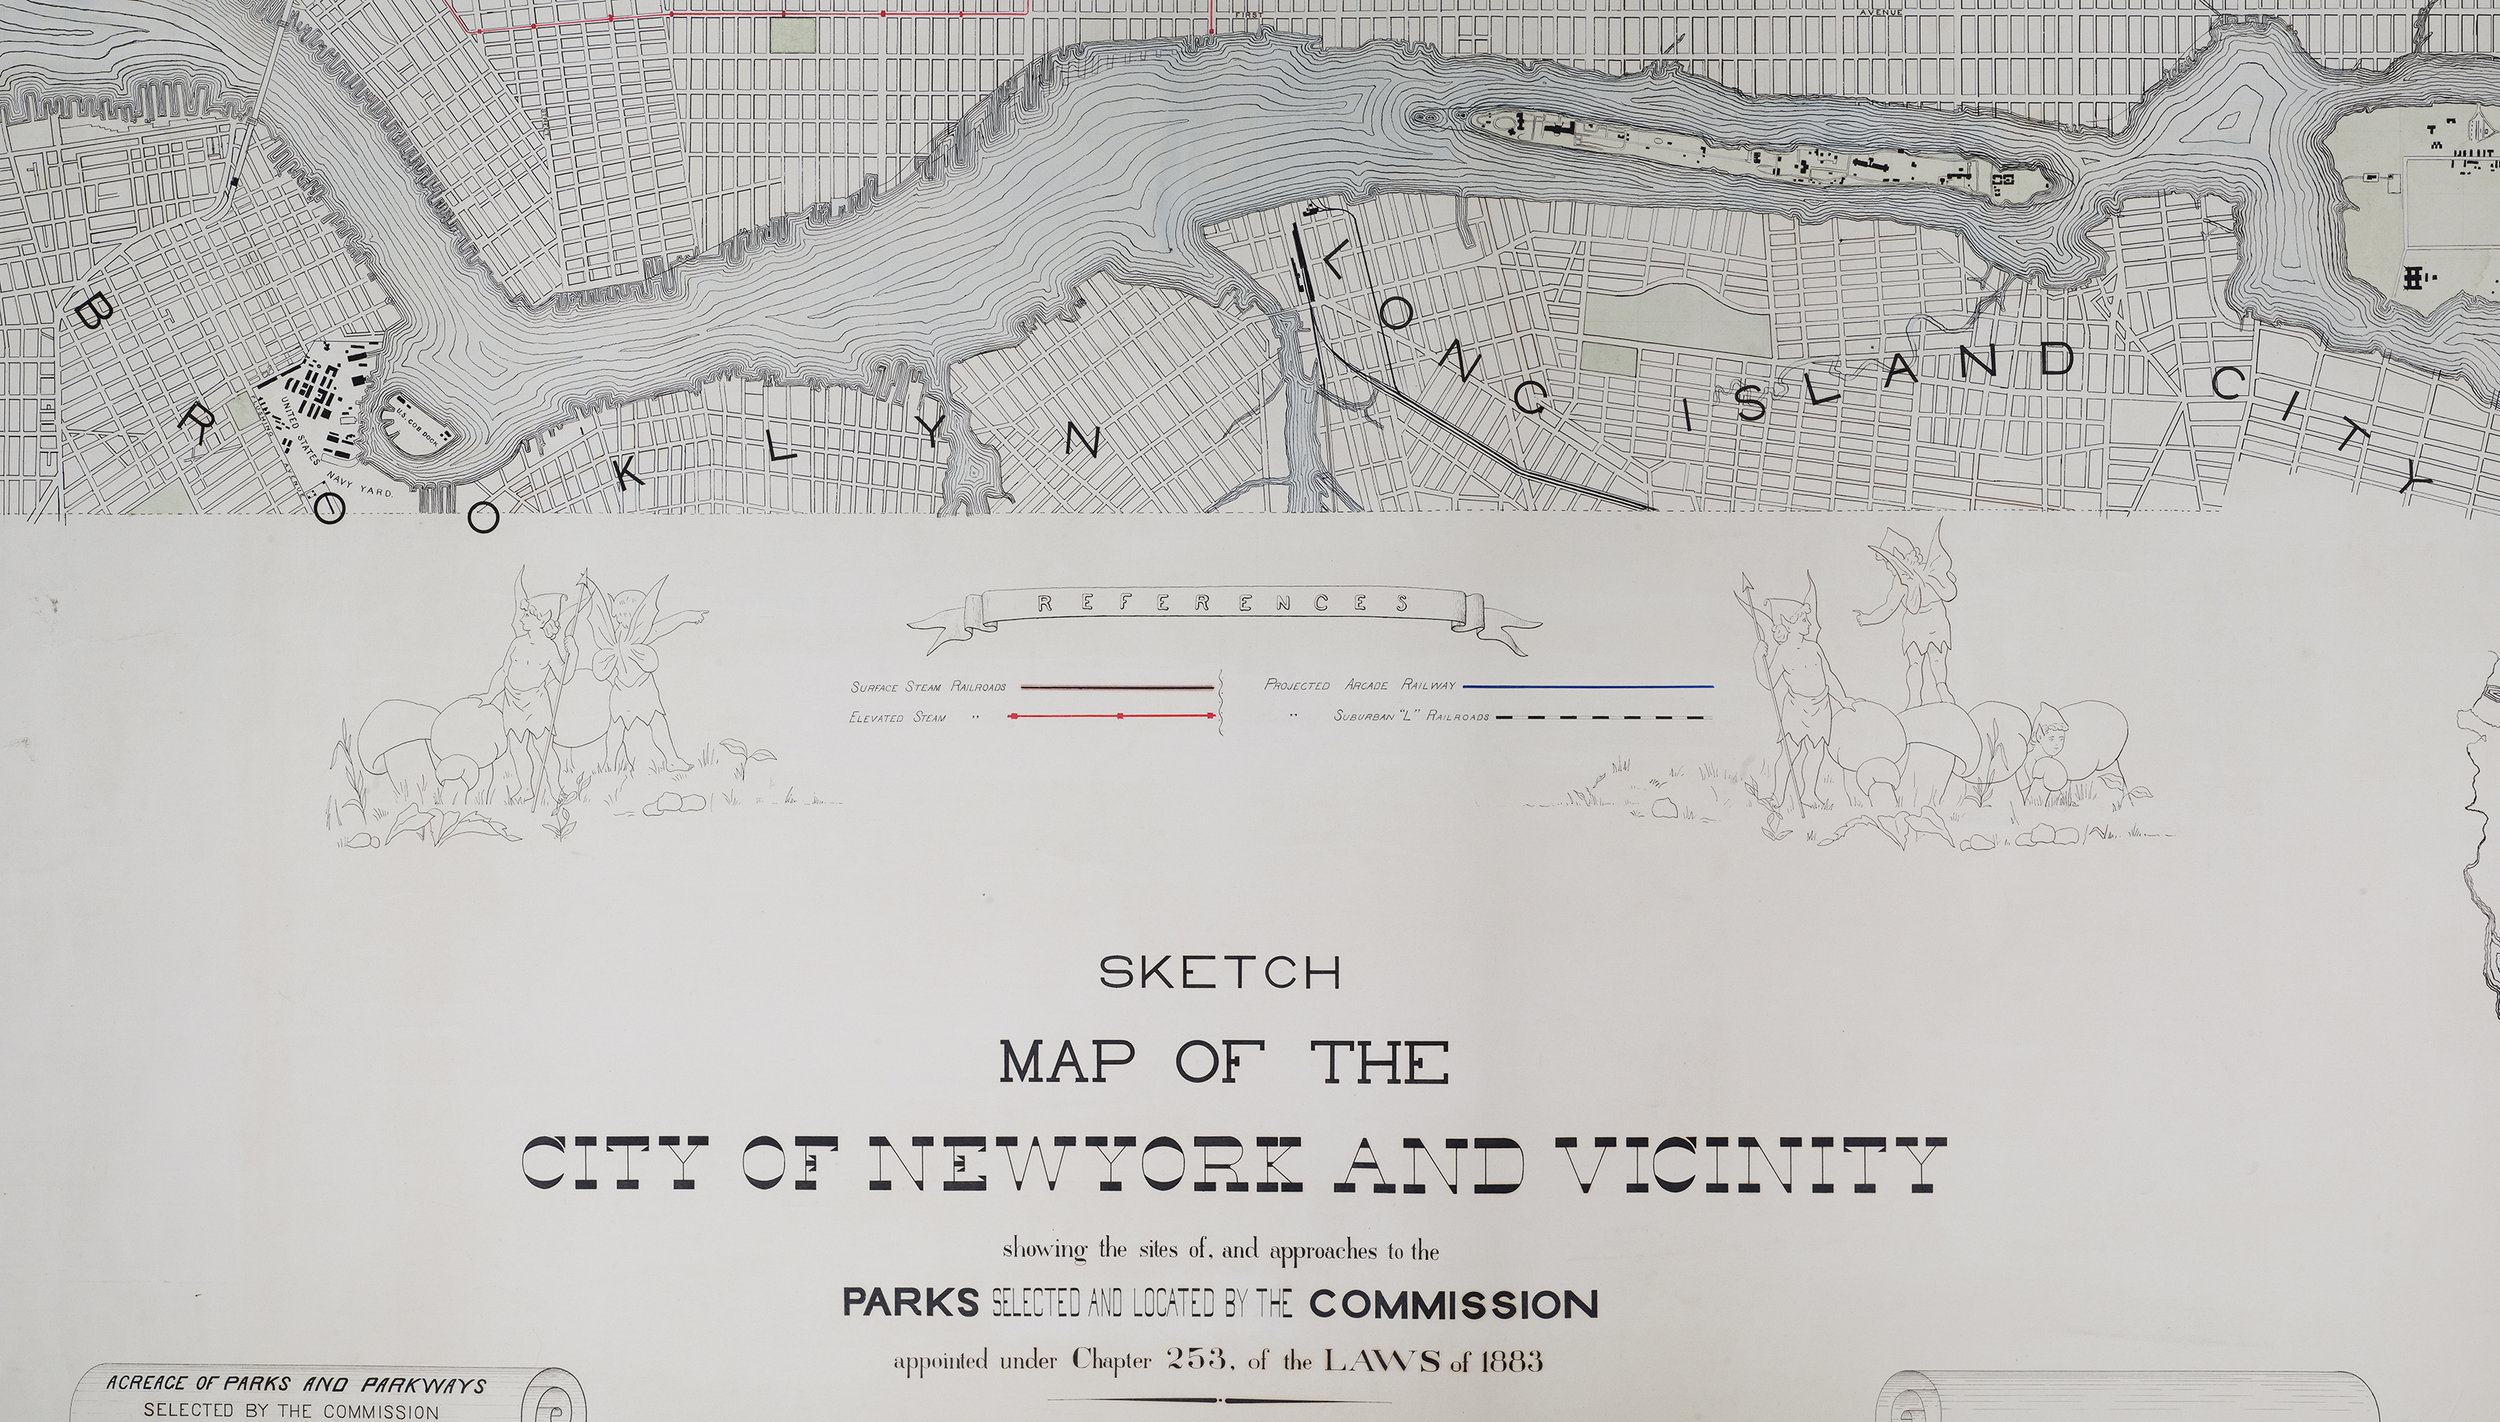 Map of the City of New York and Vicinity, showing approved parks from 1883